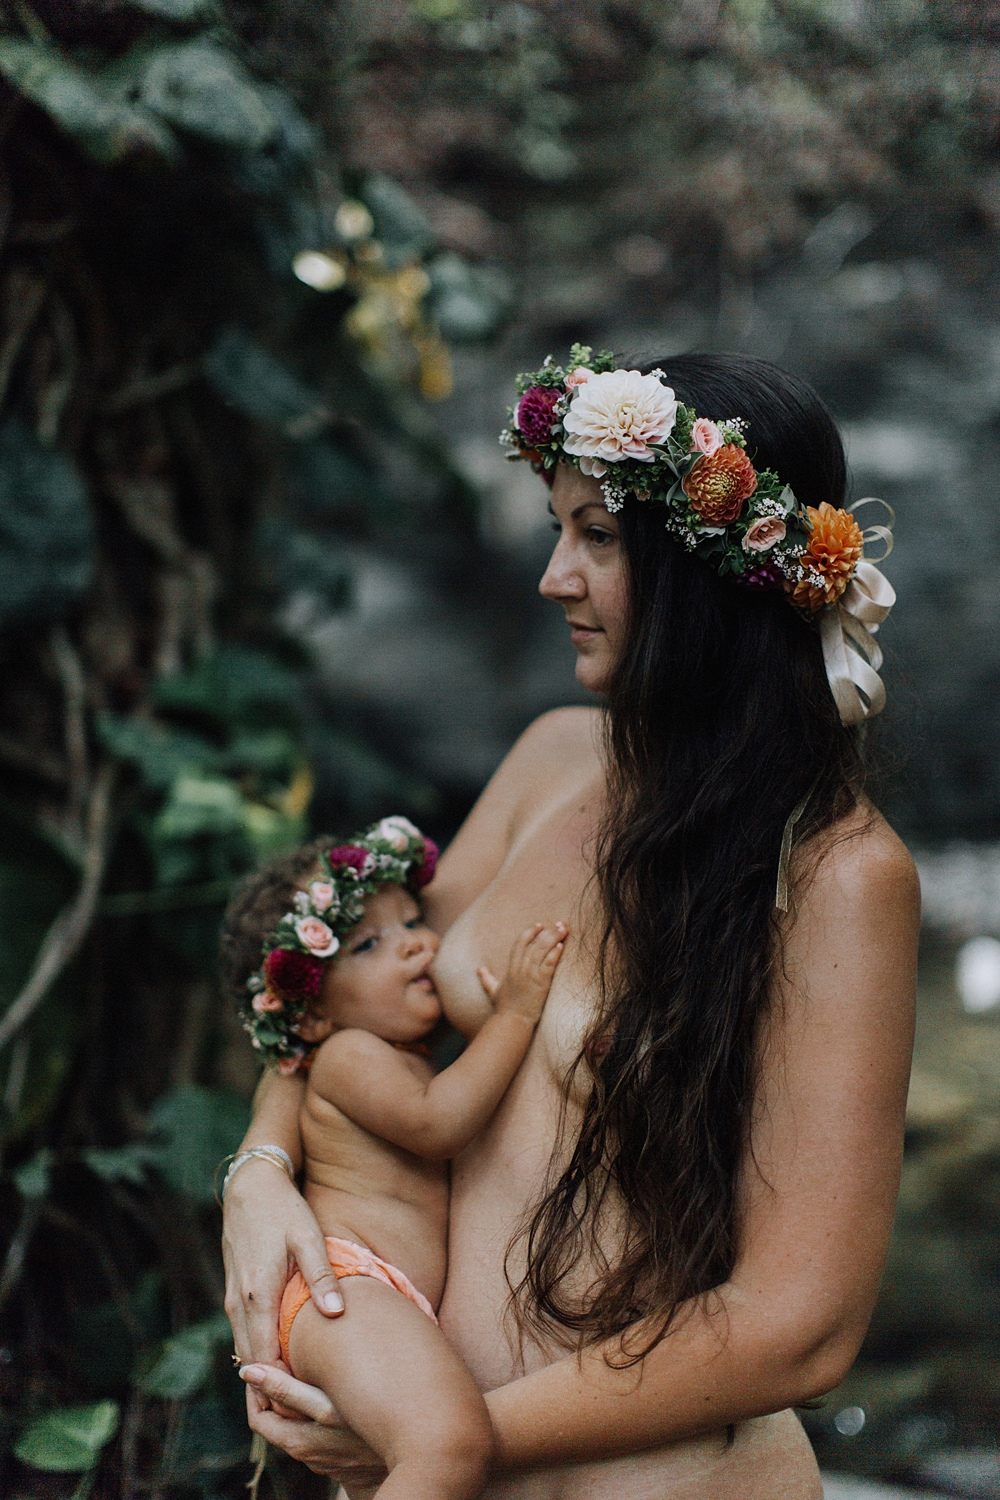 breastfeeding photos in maui, hawaii by cadencia photography.